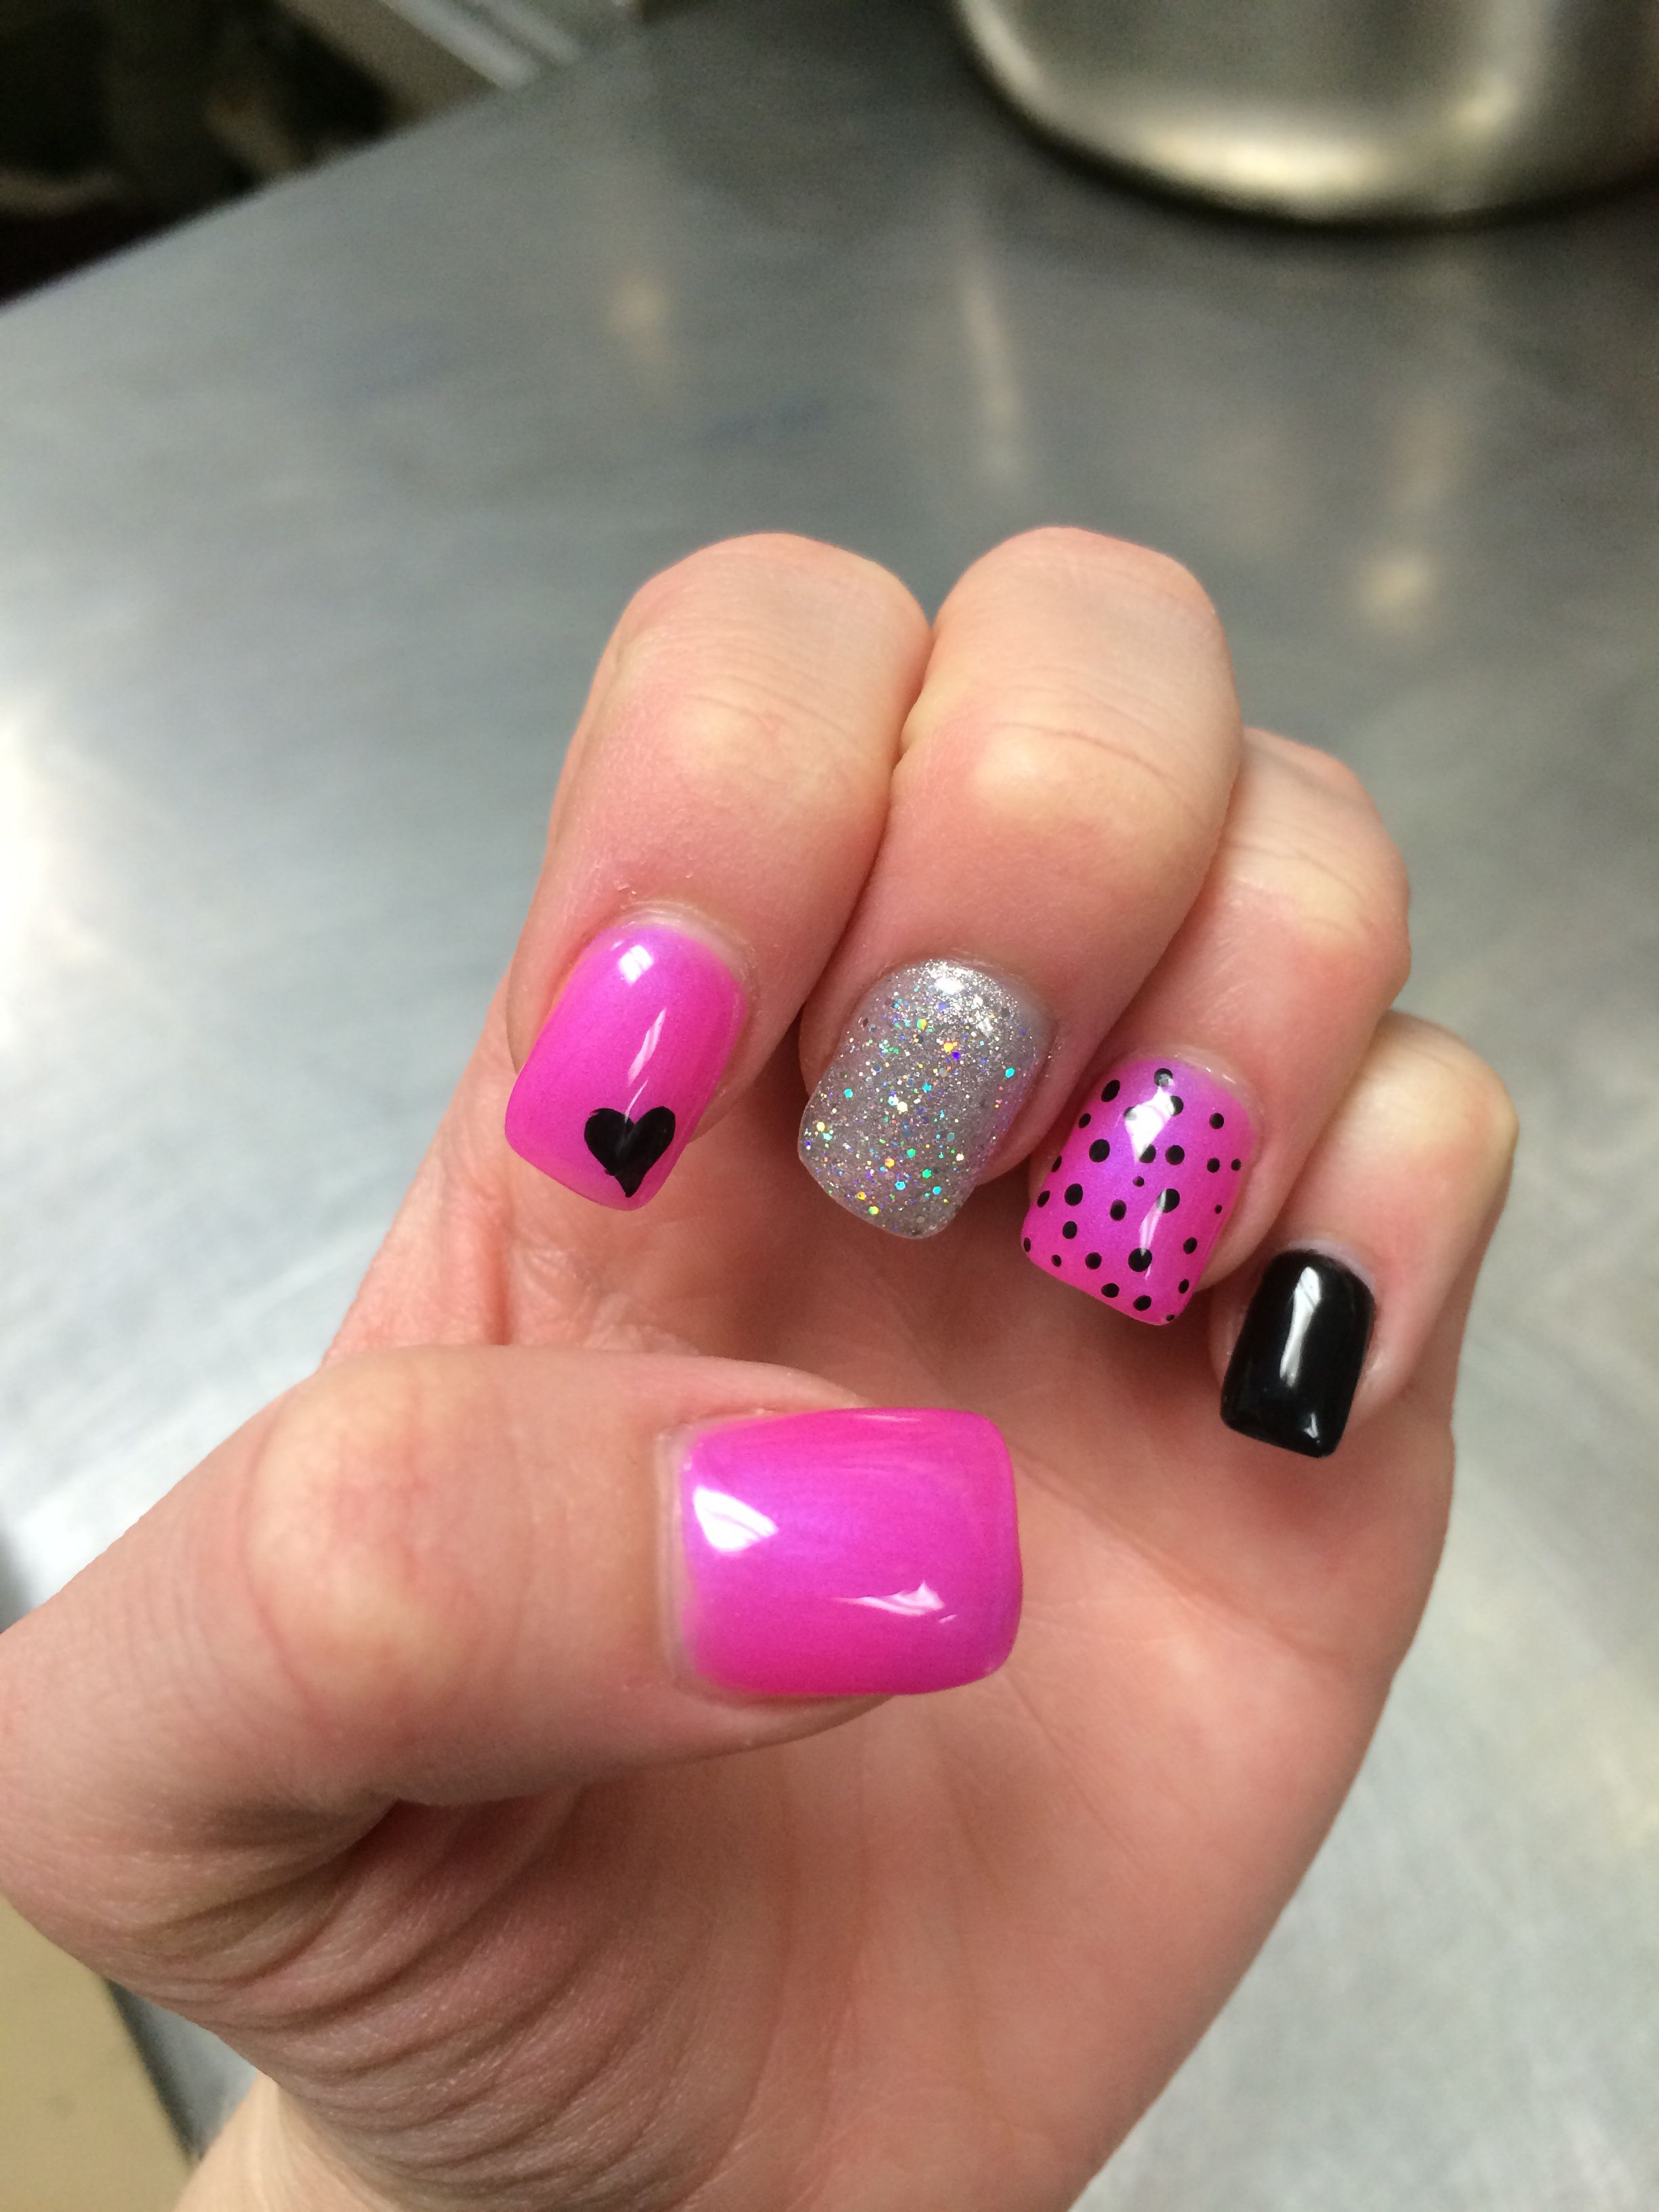 Nail Ideas | Diy Nails | Nail Designs | Nail Art Bright PINK creme ...